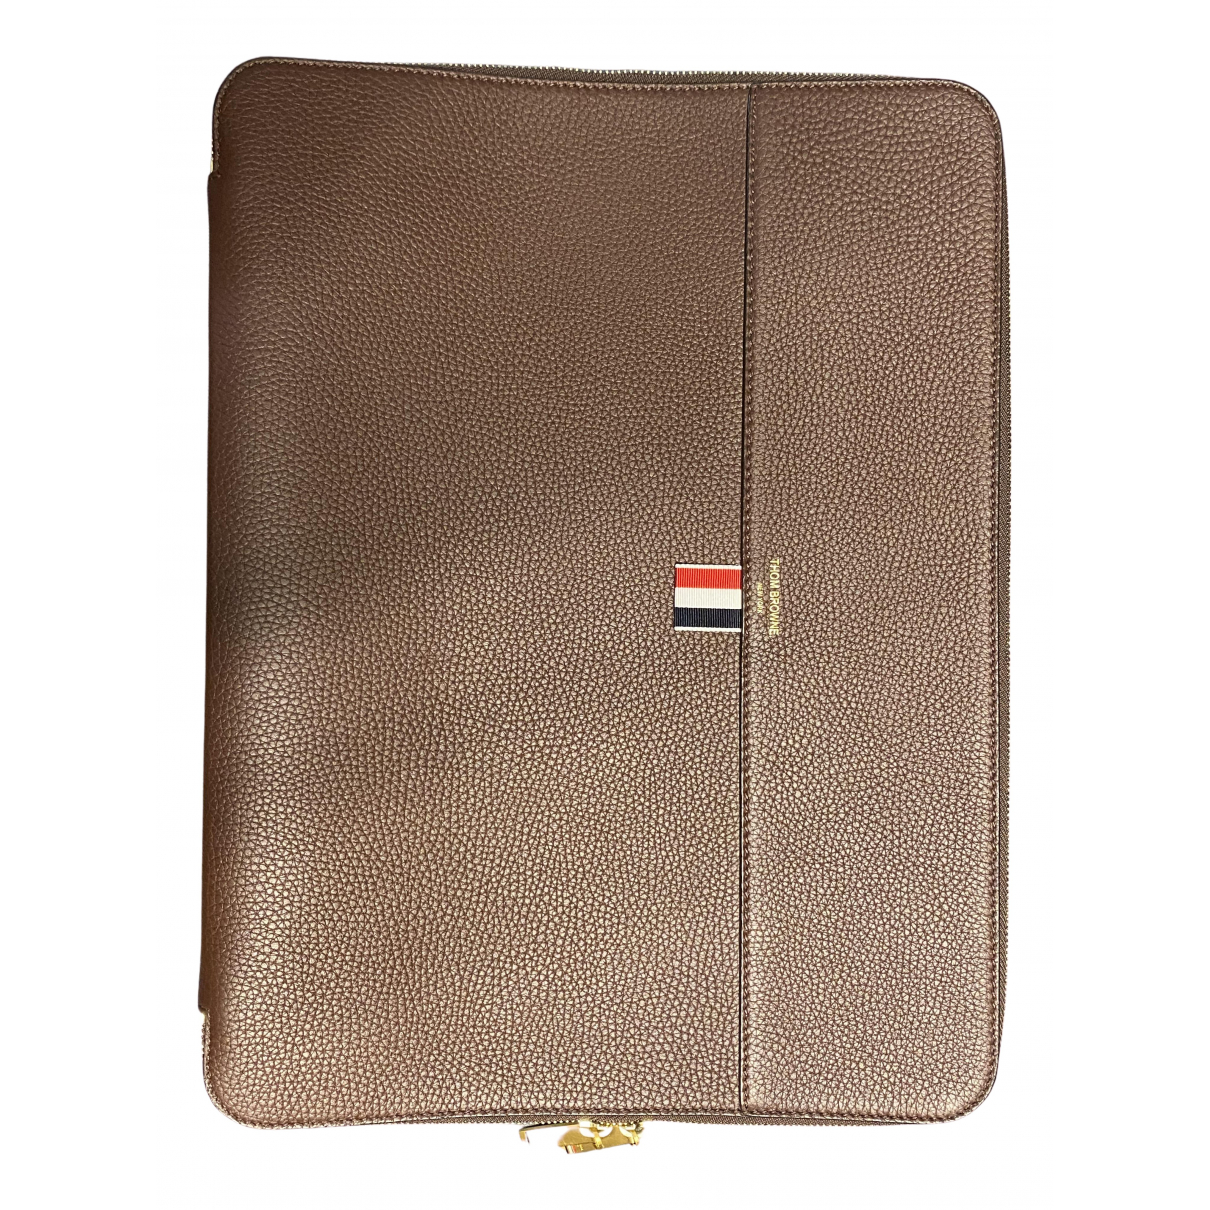 Thom Browne N Brown Leather Small bag, wallet & cases for Men N